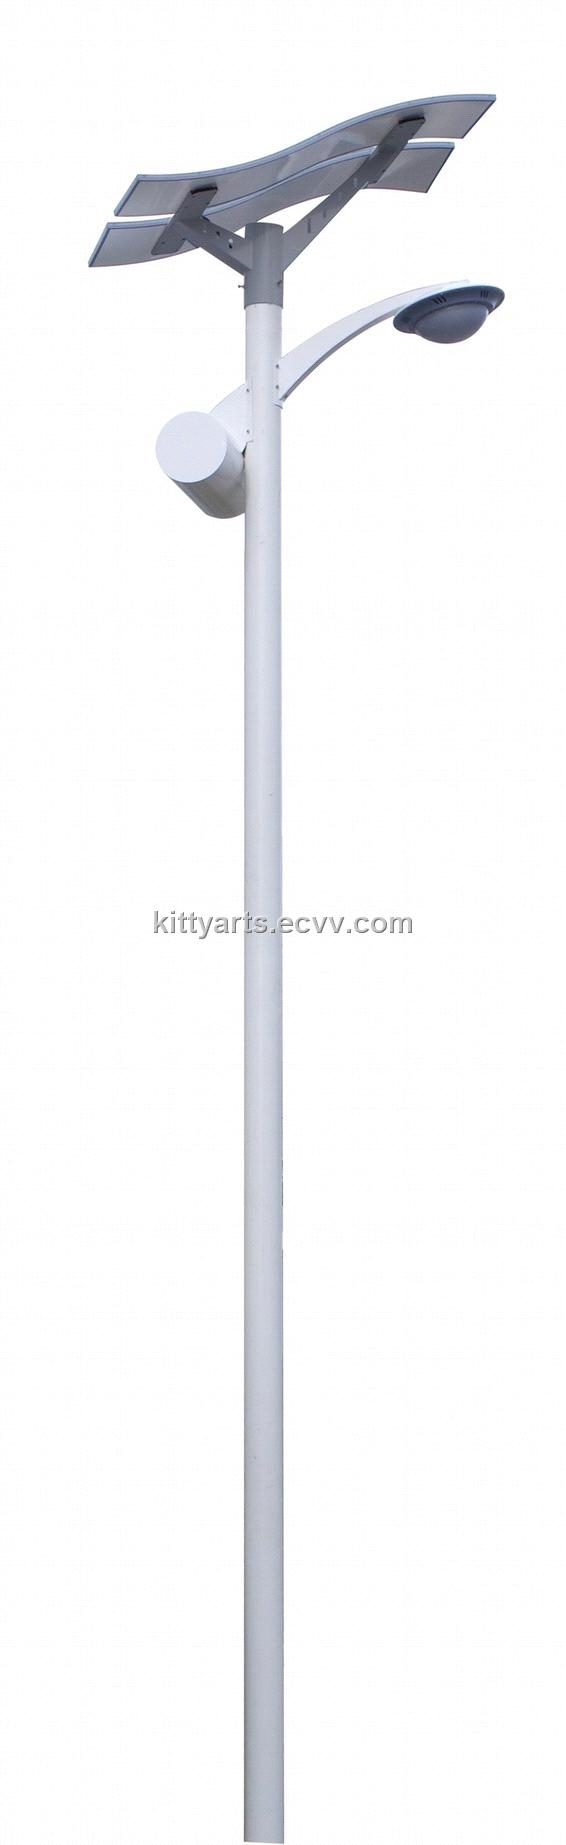 30W flexible solar street light